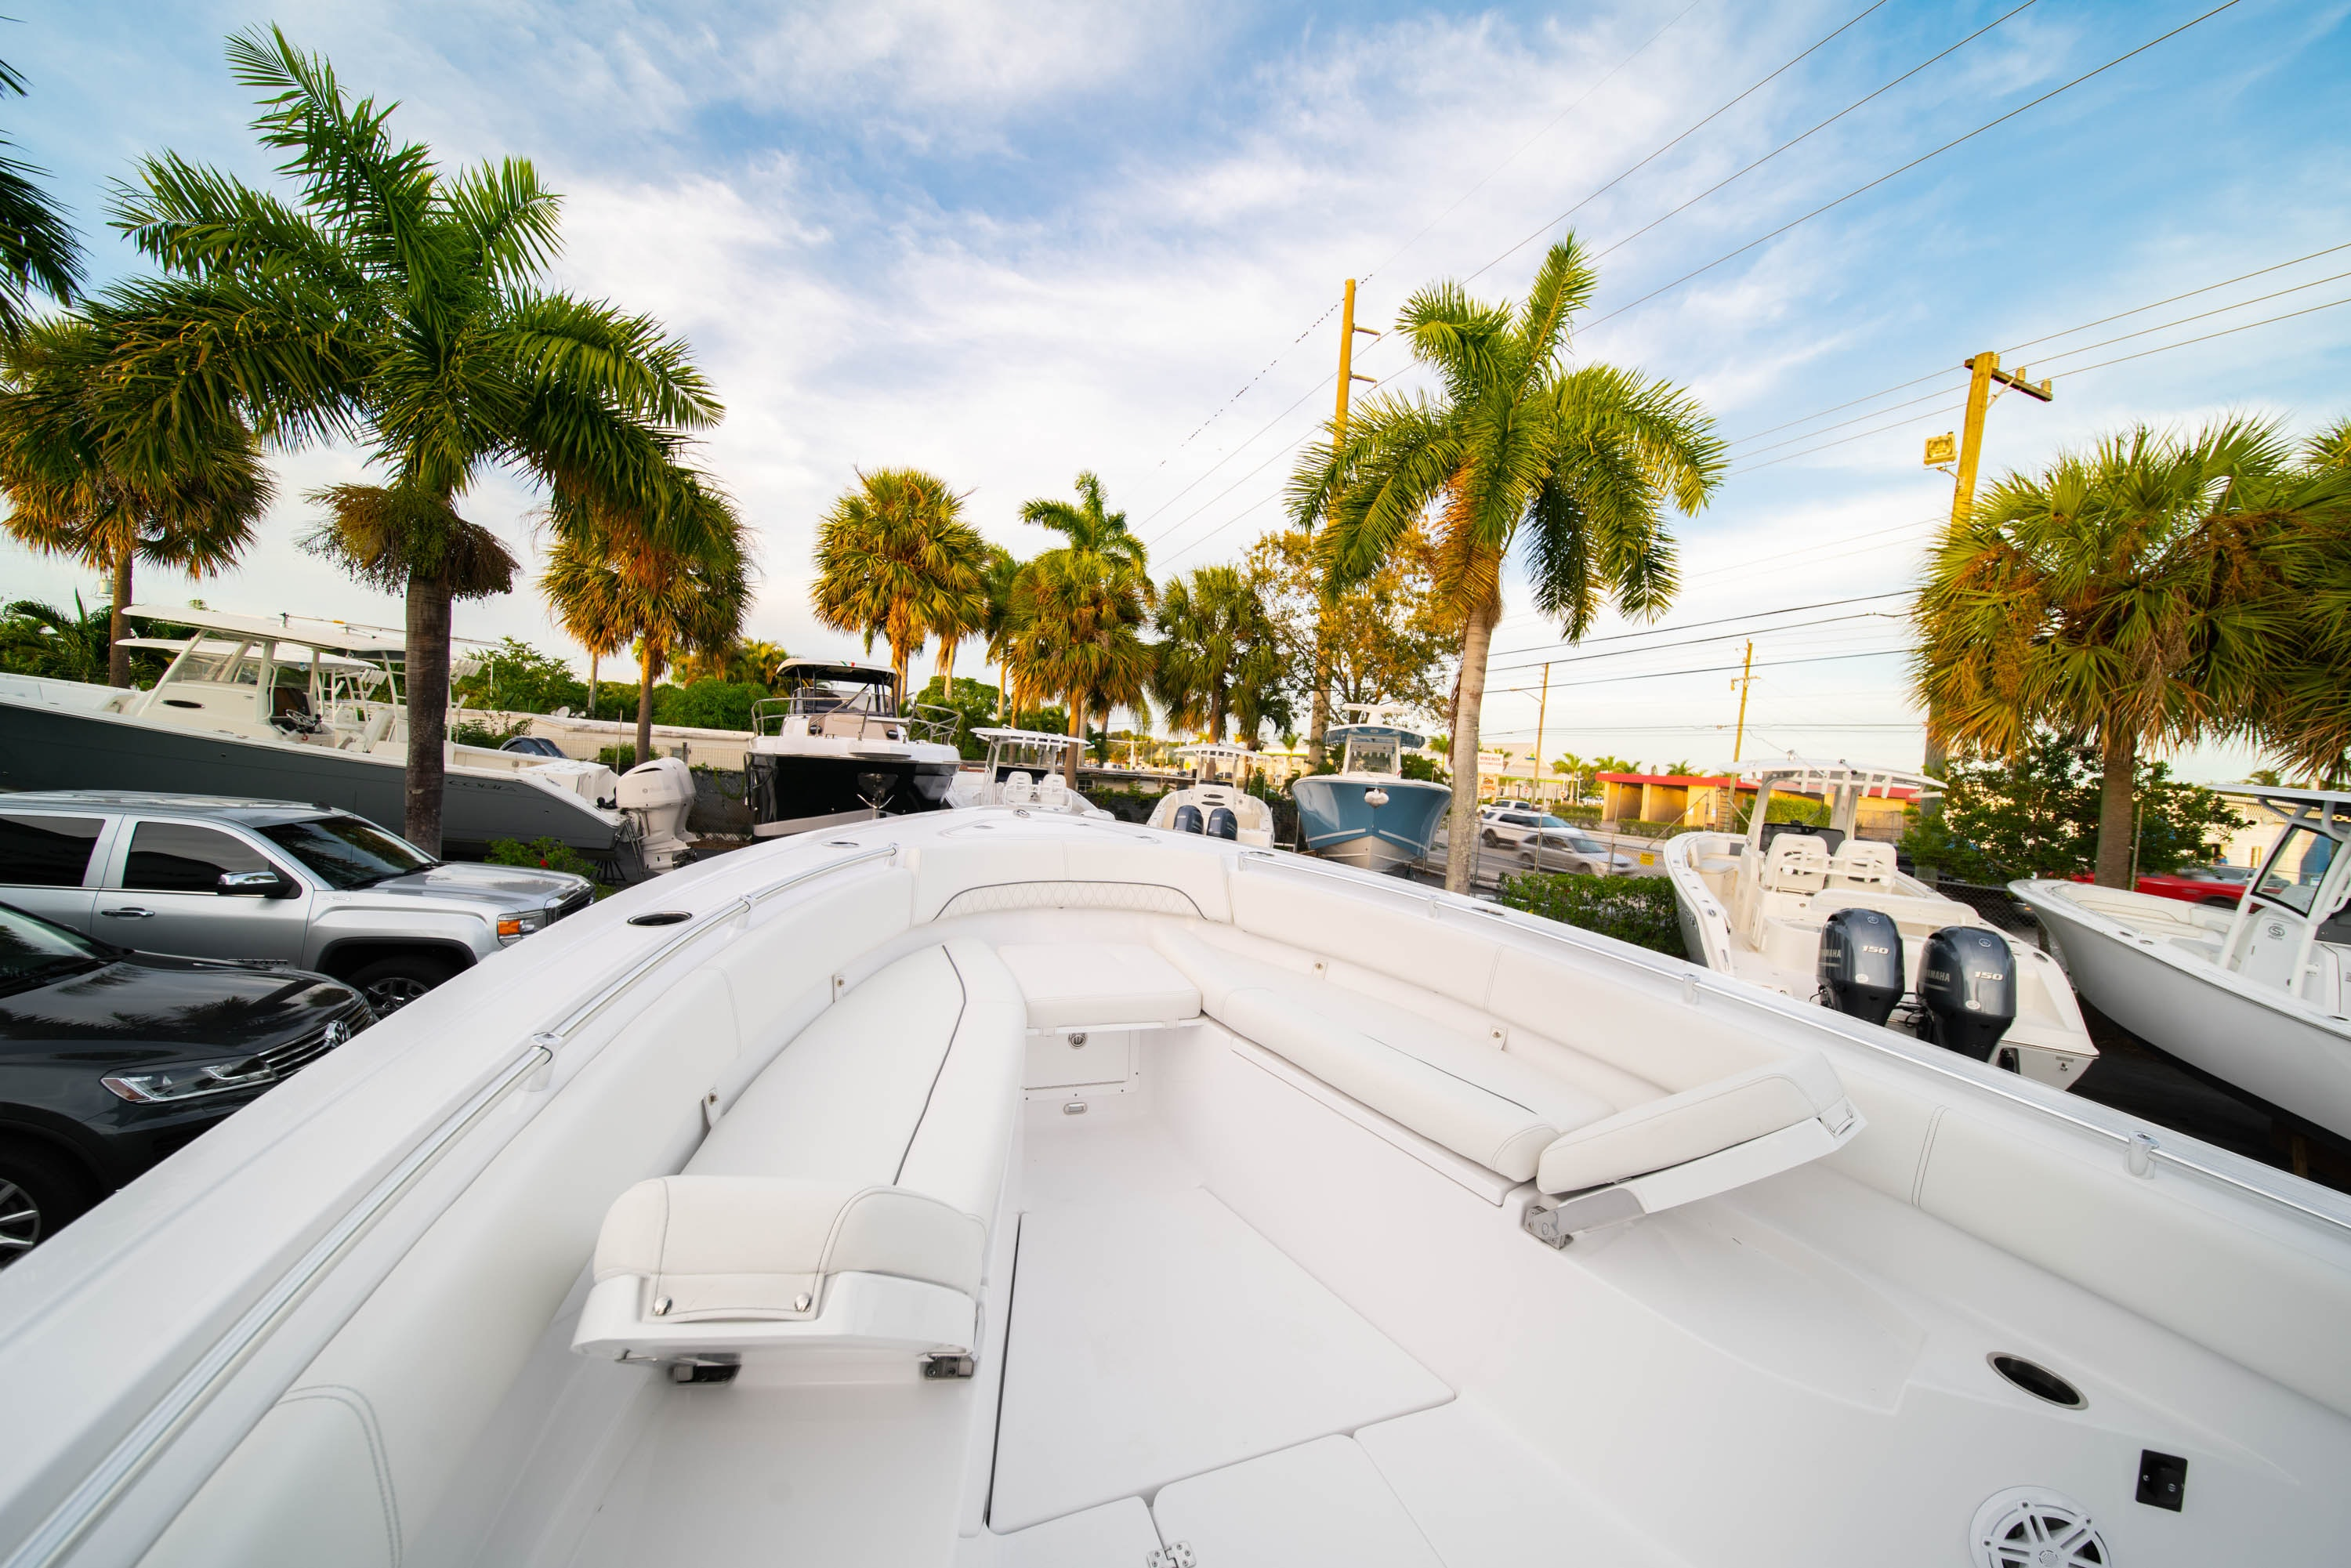 Thumbnail 46 for New 2020 Sportsman Open 282 Center Console boat for sale in West Palm Beach, FL